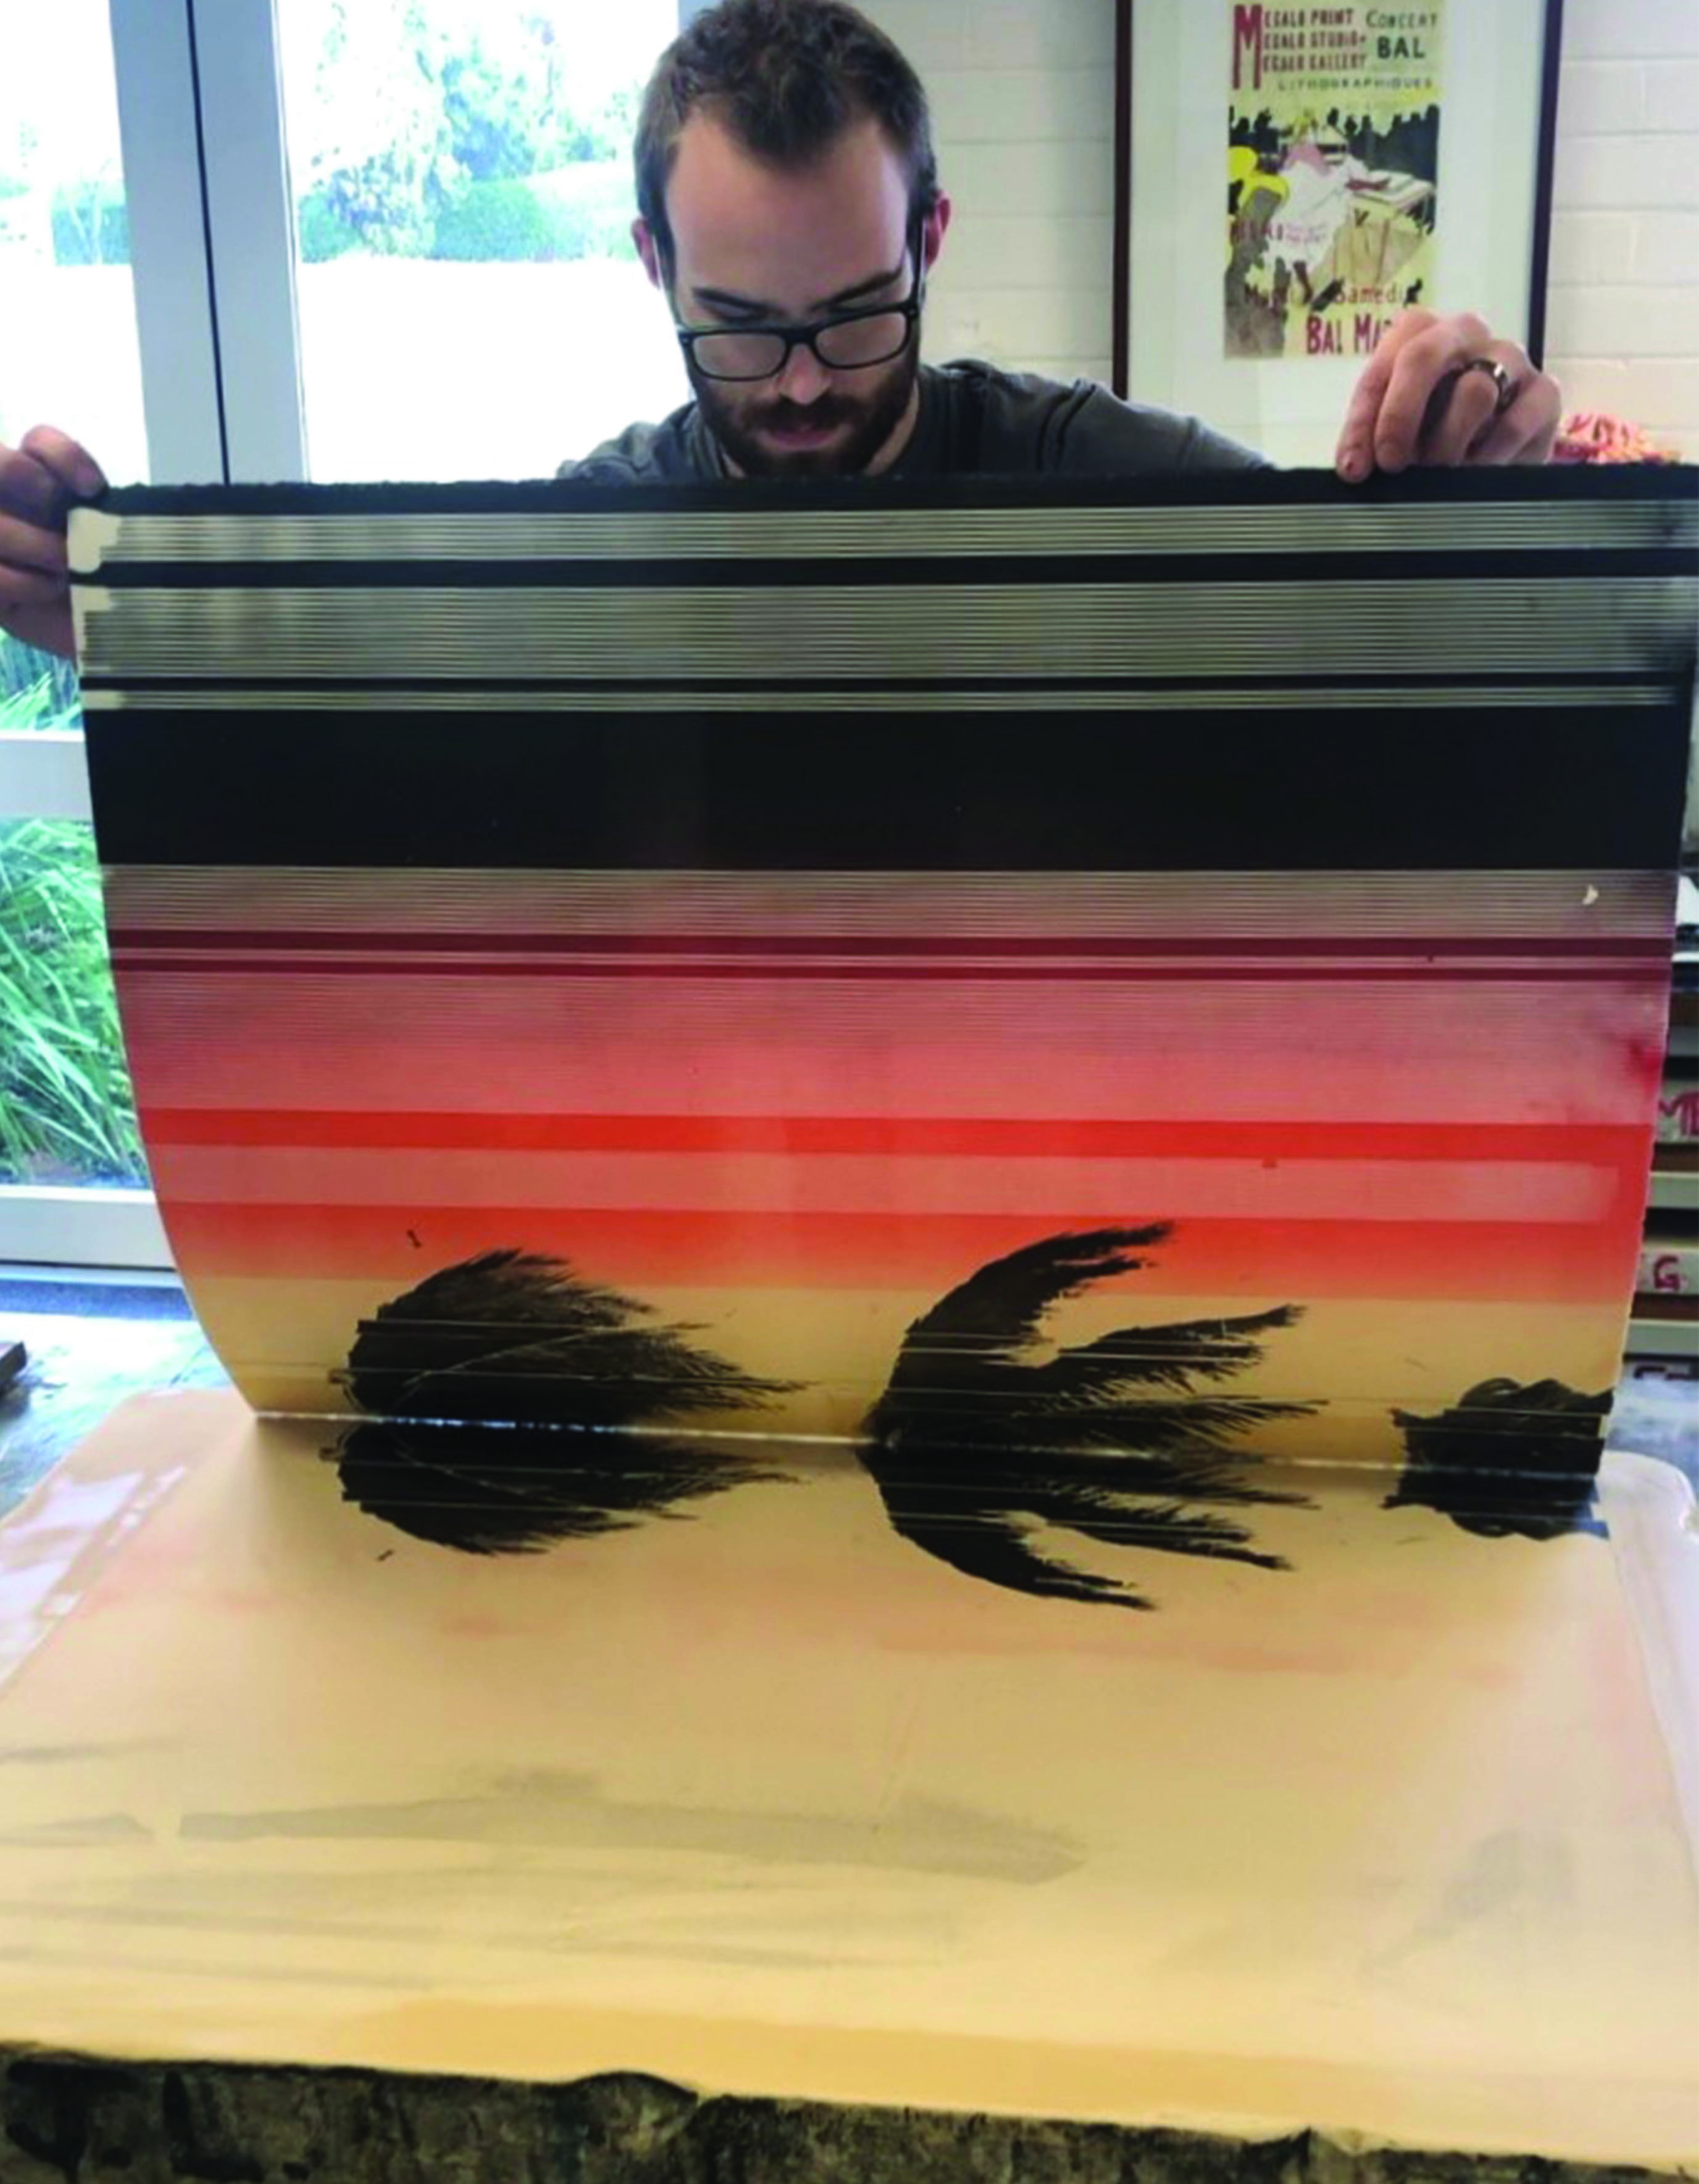 Pulling the final multi-stone print - images created using screen print on stone method